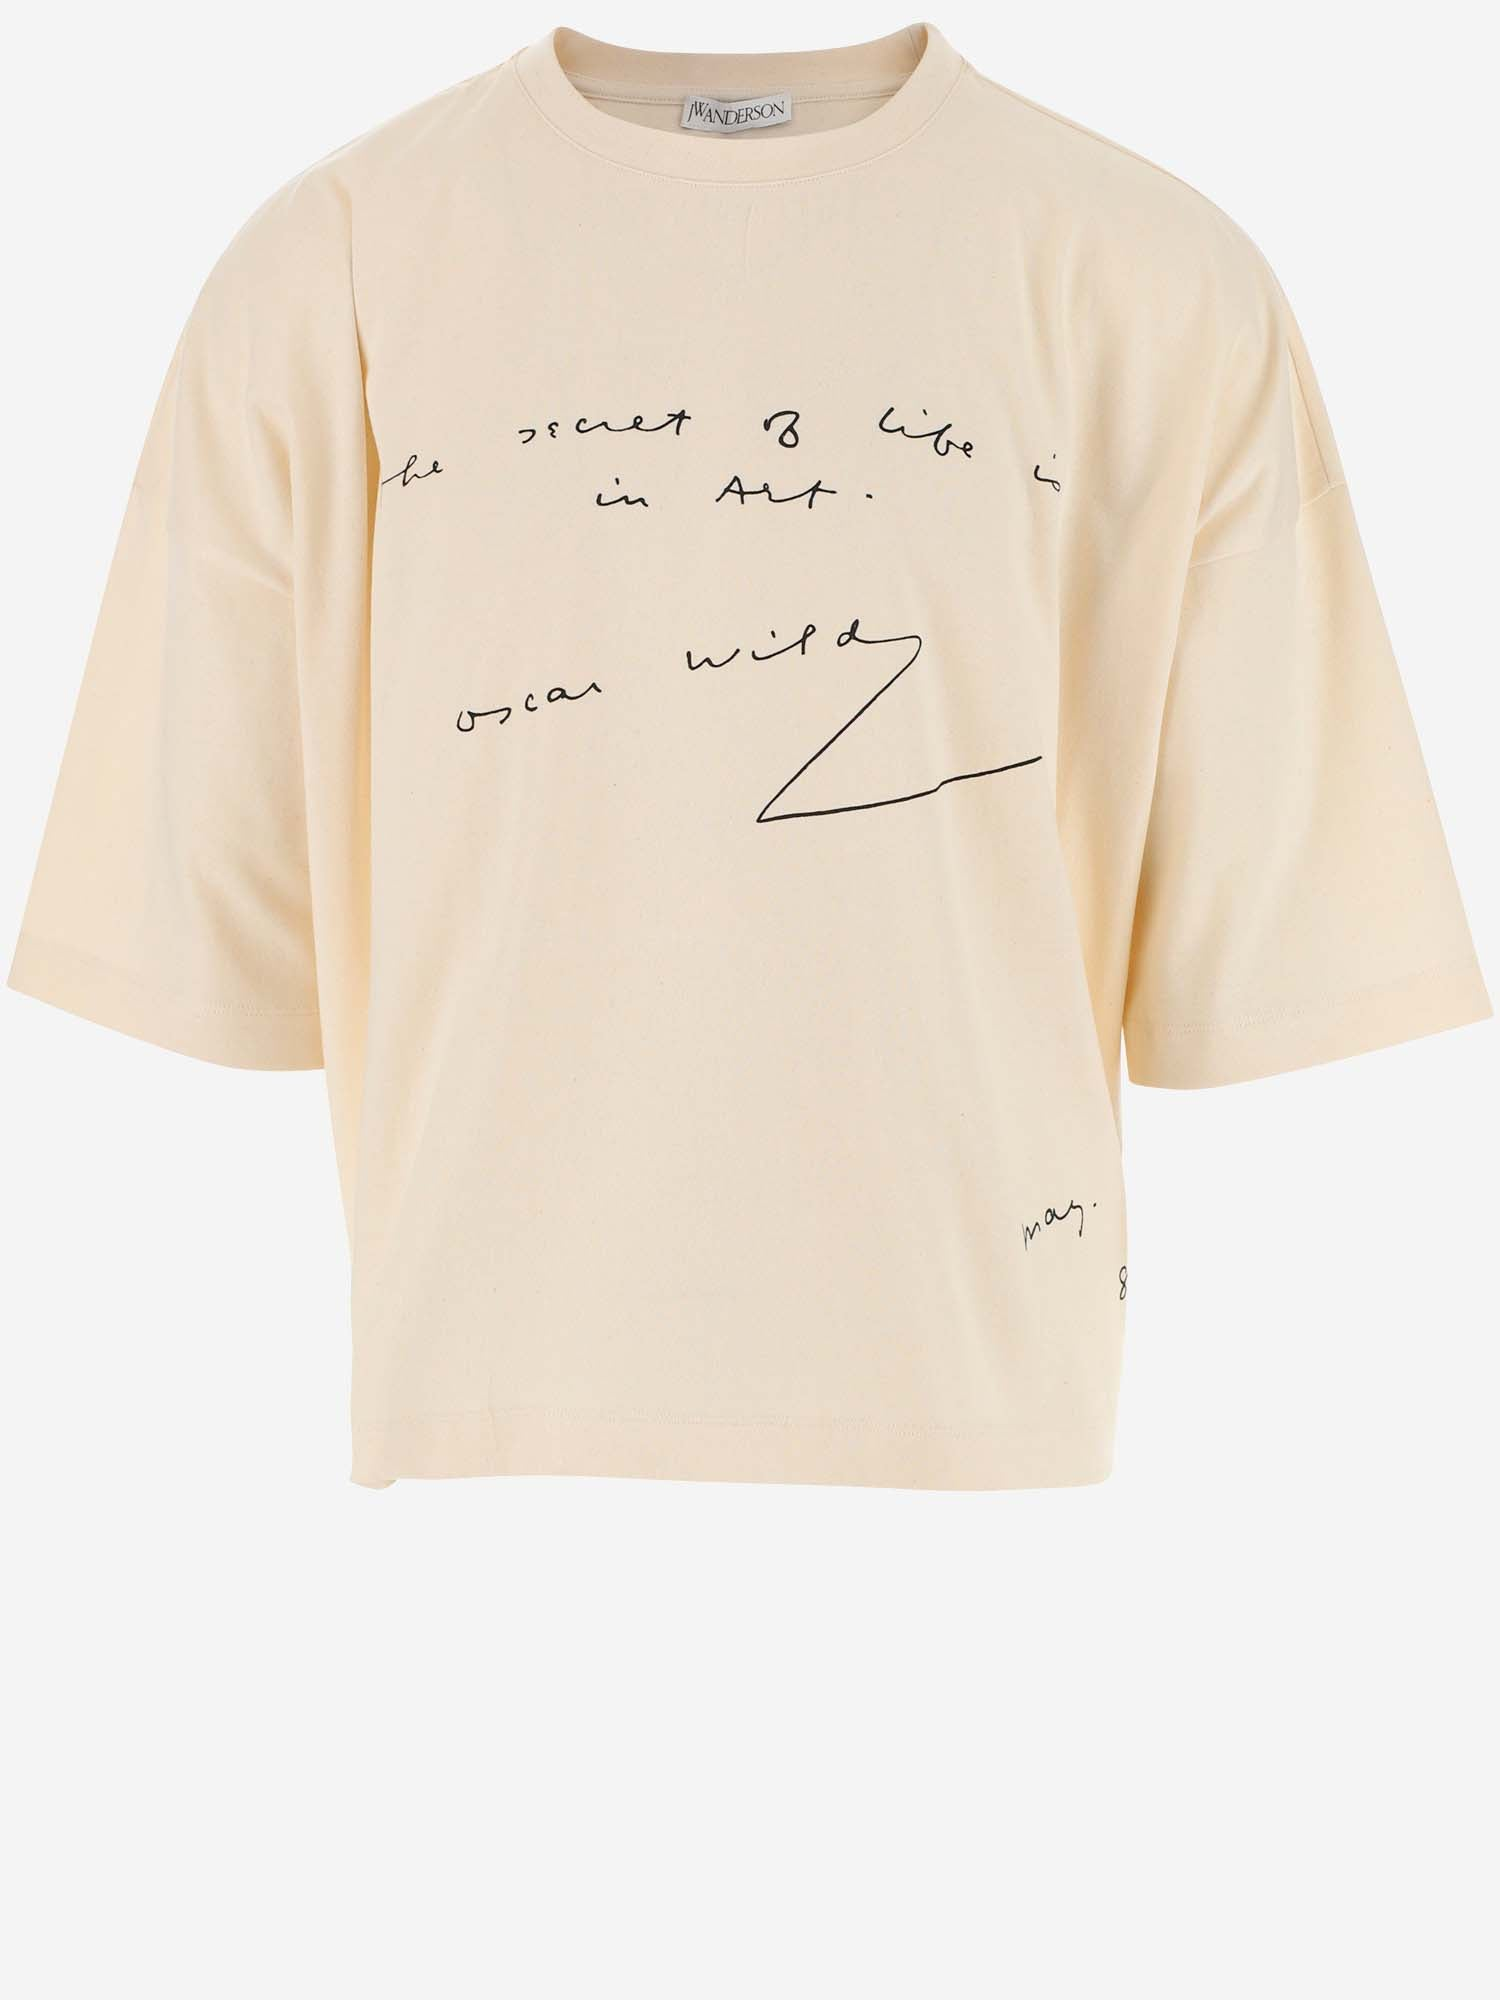 Jw Anderson Cottons JW ANDERSON OSCAR WILDE TEXT PRINT OVERSIZED T